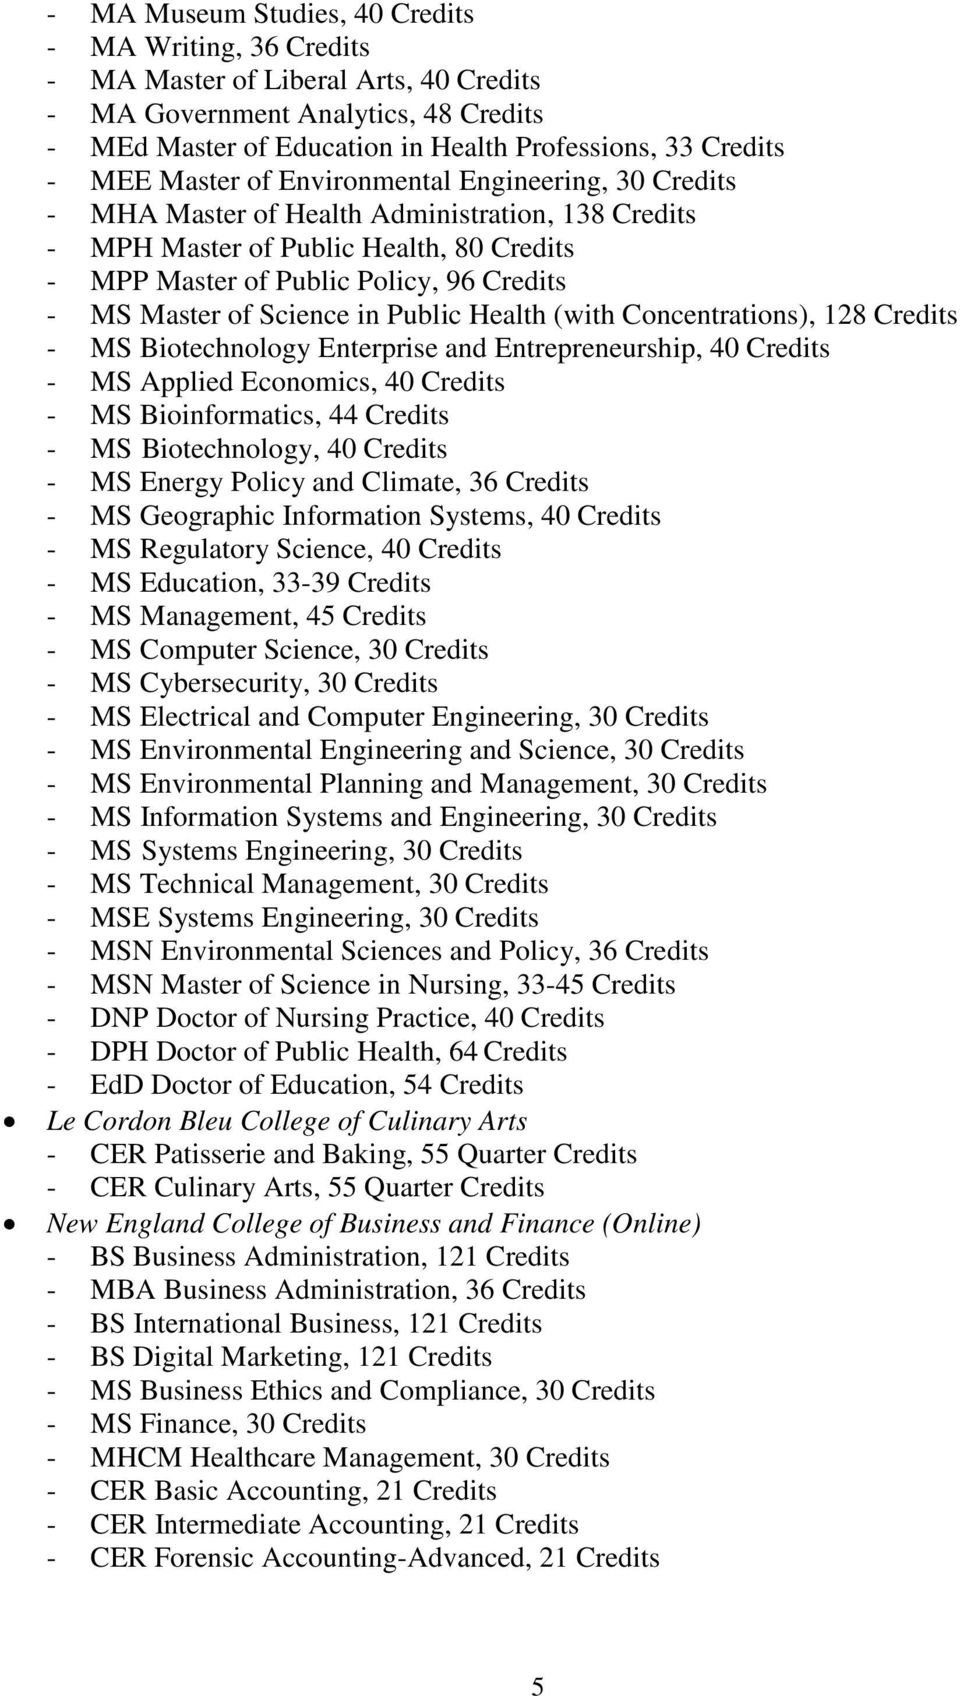 of Science in Public Health (with Concentrations), 128 Credits - MS Biotechnology Enterprise and Entrepreneurship, 40 Credits - MS Applied Economics, 40 Credits - MS Bioinformatics, 44 Credits - MS